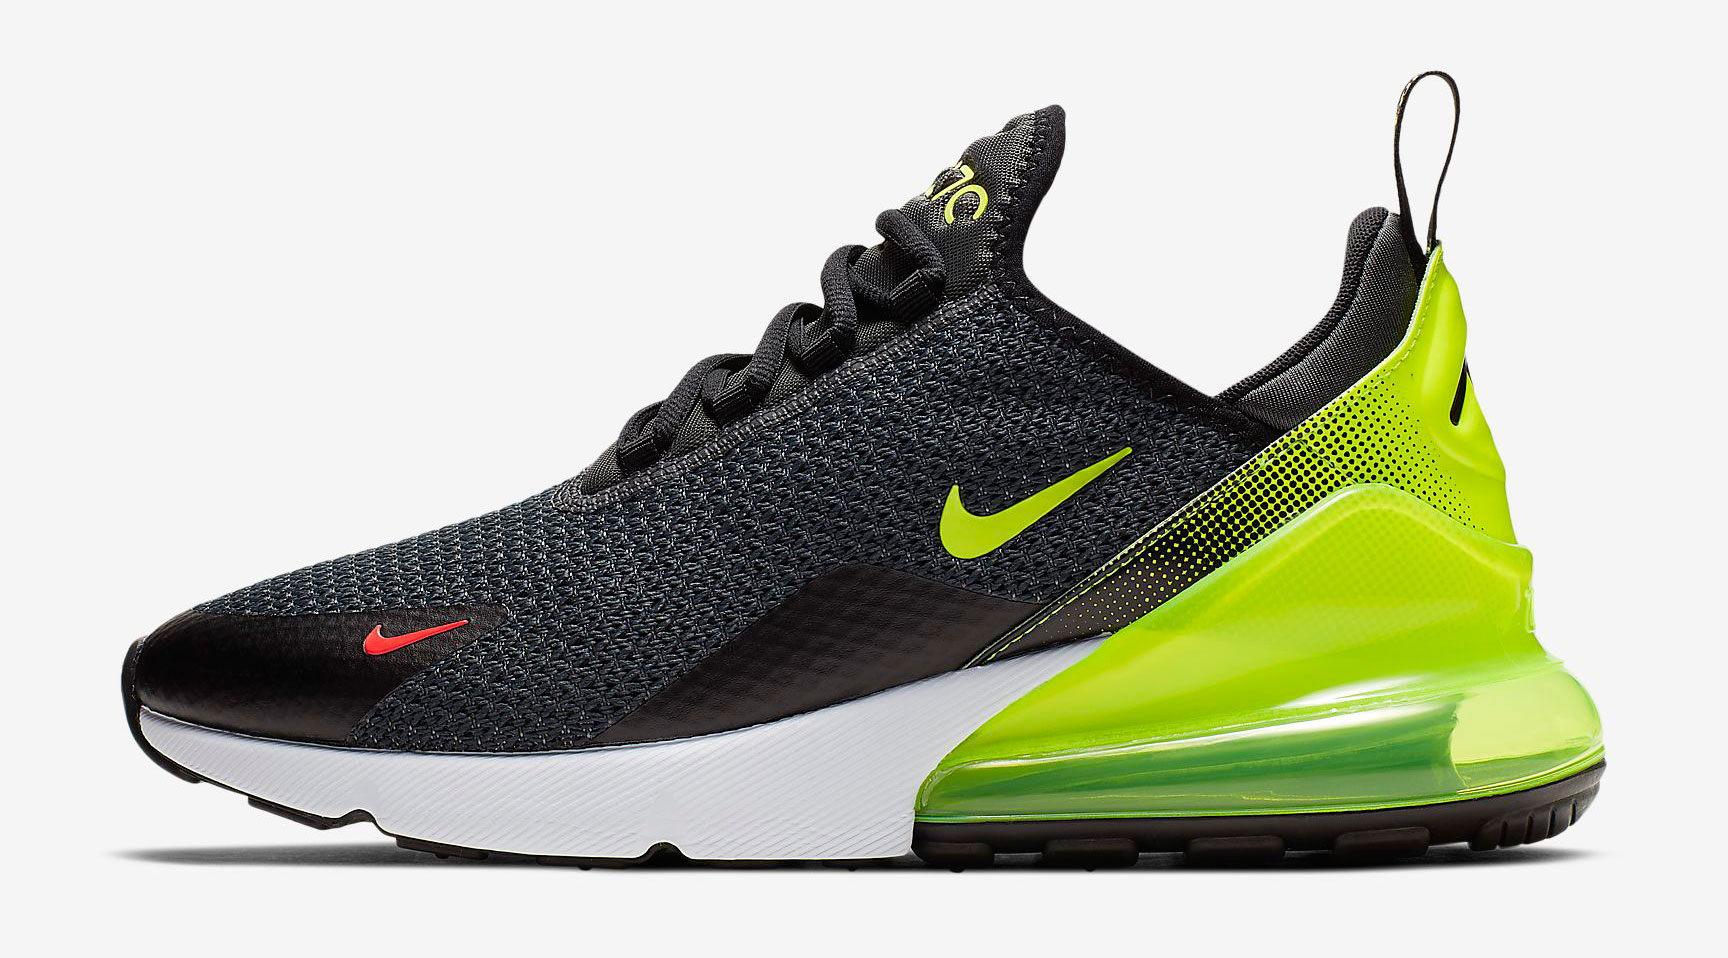 nike-air-max-270-retro-future-where-to-buy